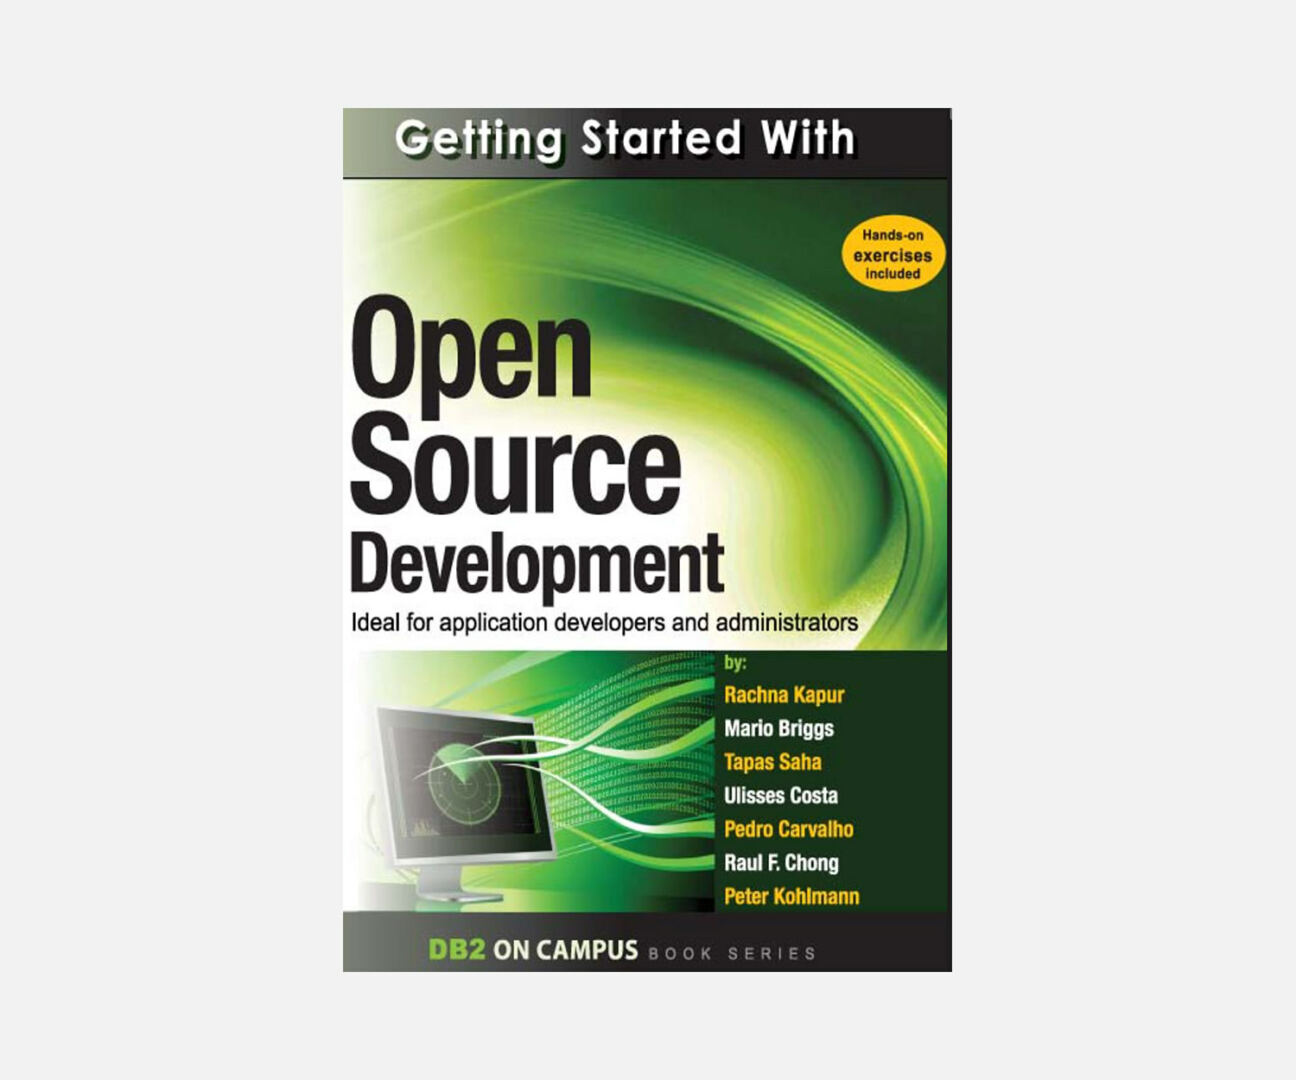 Getting-Started-With-Open-Source-Development